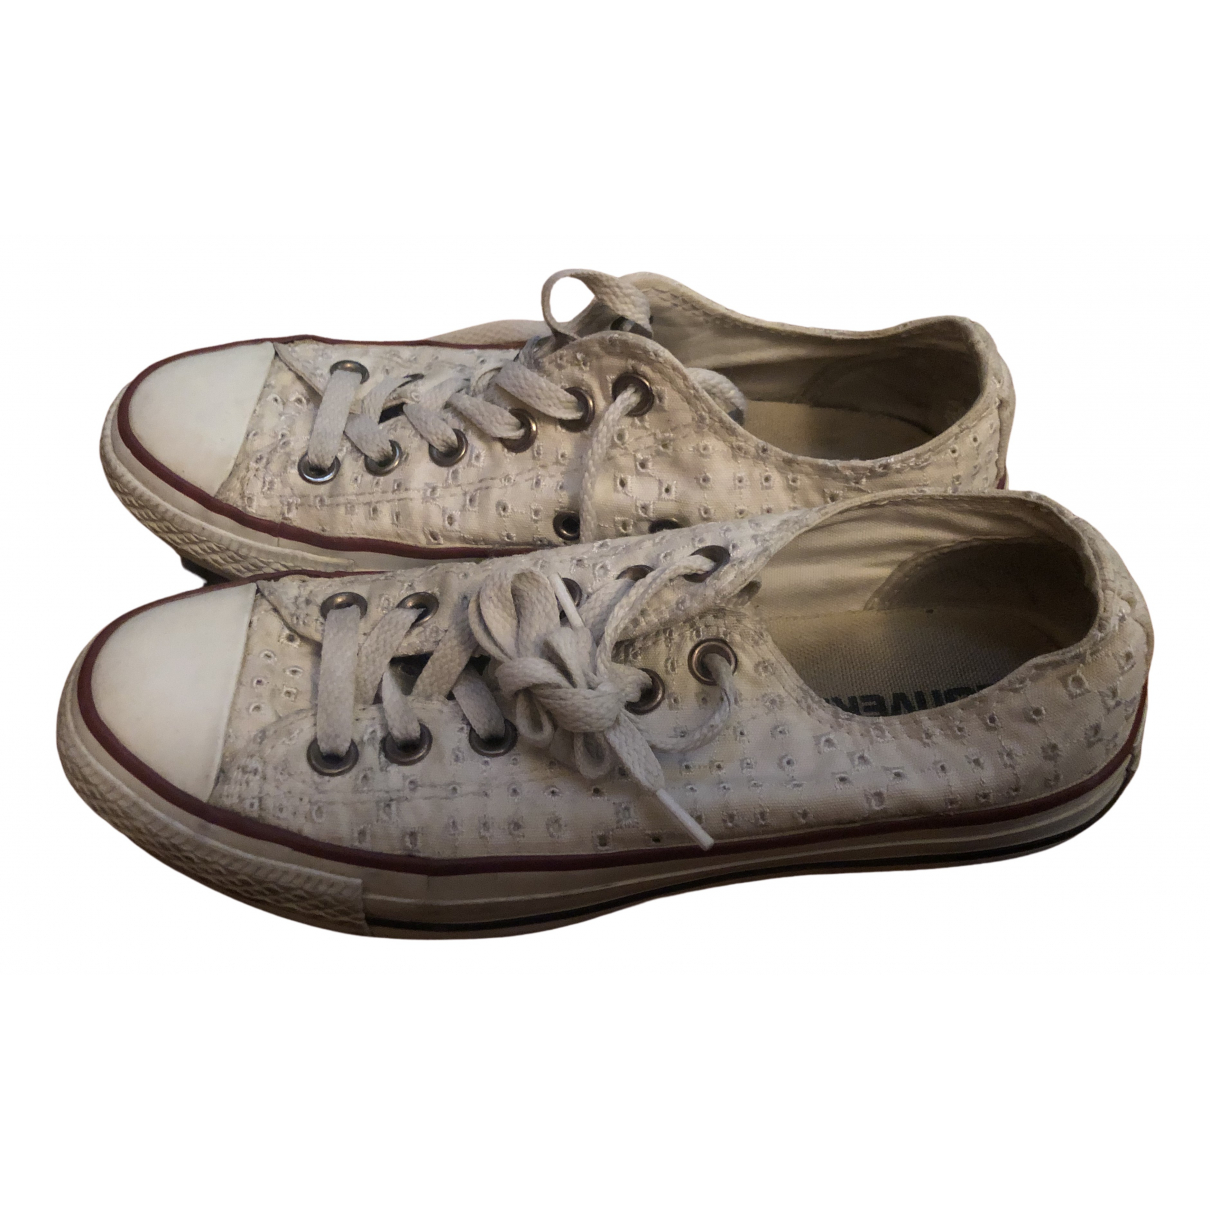 Converse N White Cloth Trainers for Women 38 EU